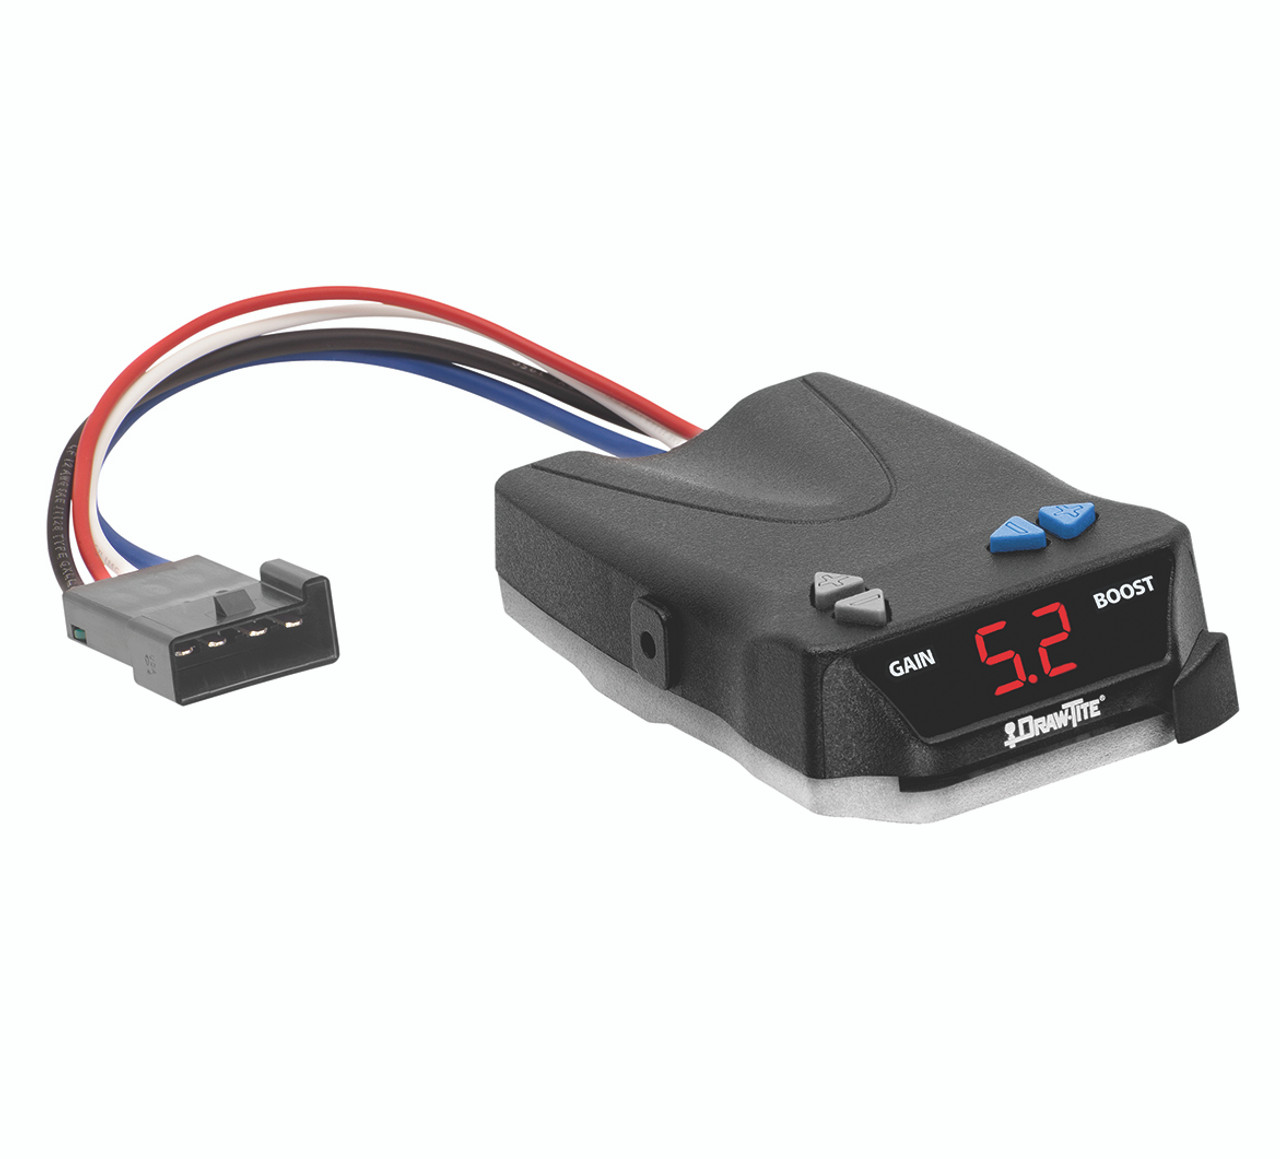 5535 --- Drawtite I-Command Proportional Brake Controller - 2, 4,